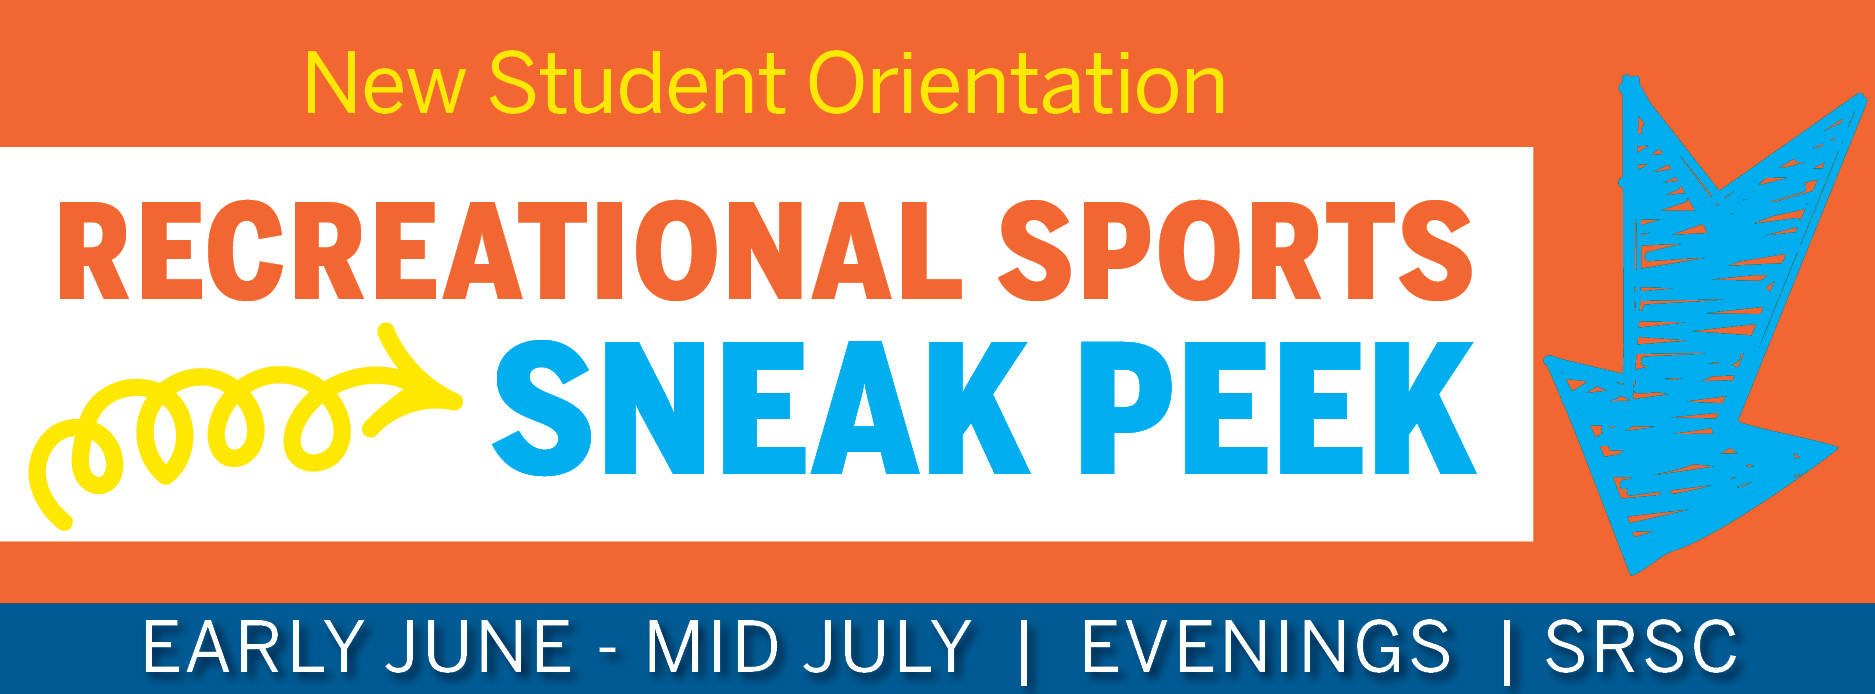 New Student Orientation Recreational Sports Sneak Peek from early June - mid July in the evenings at the SRSC